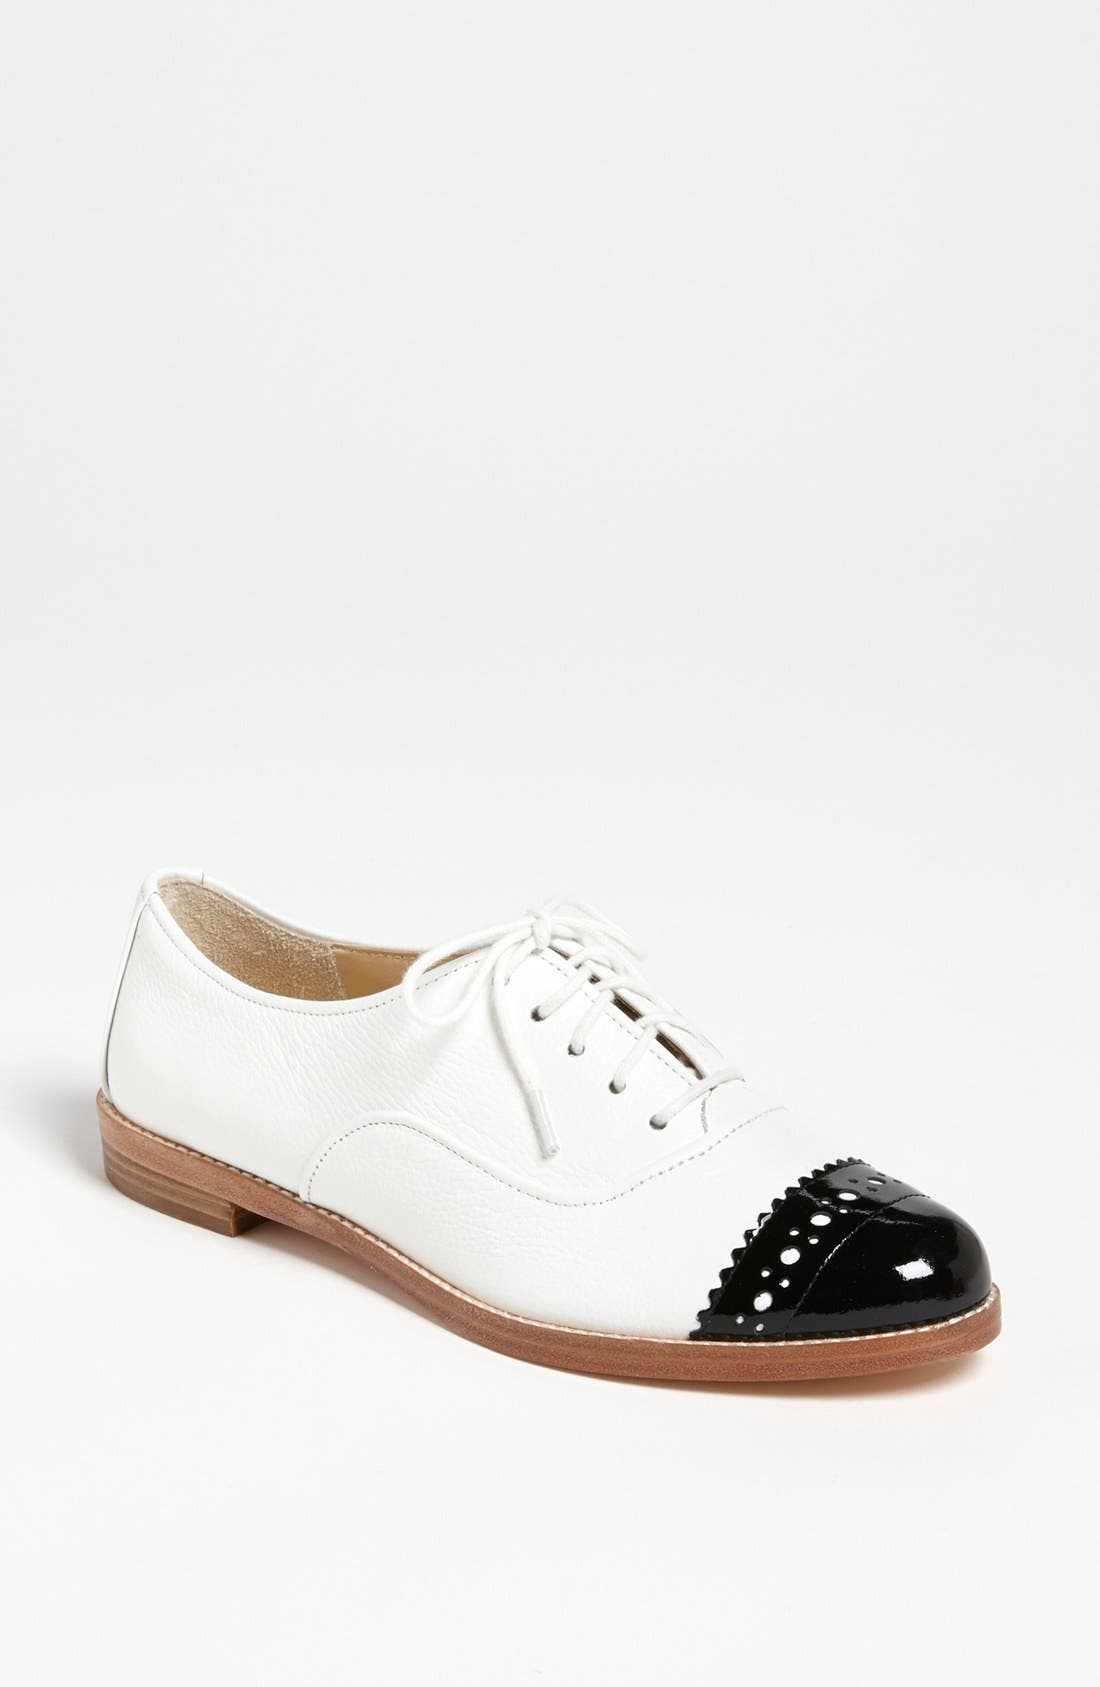 Alternate Image 1 Selected - kate spade new york 'poppin' oxford